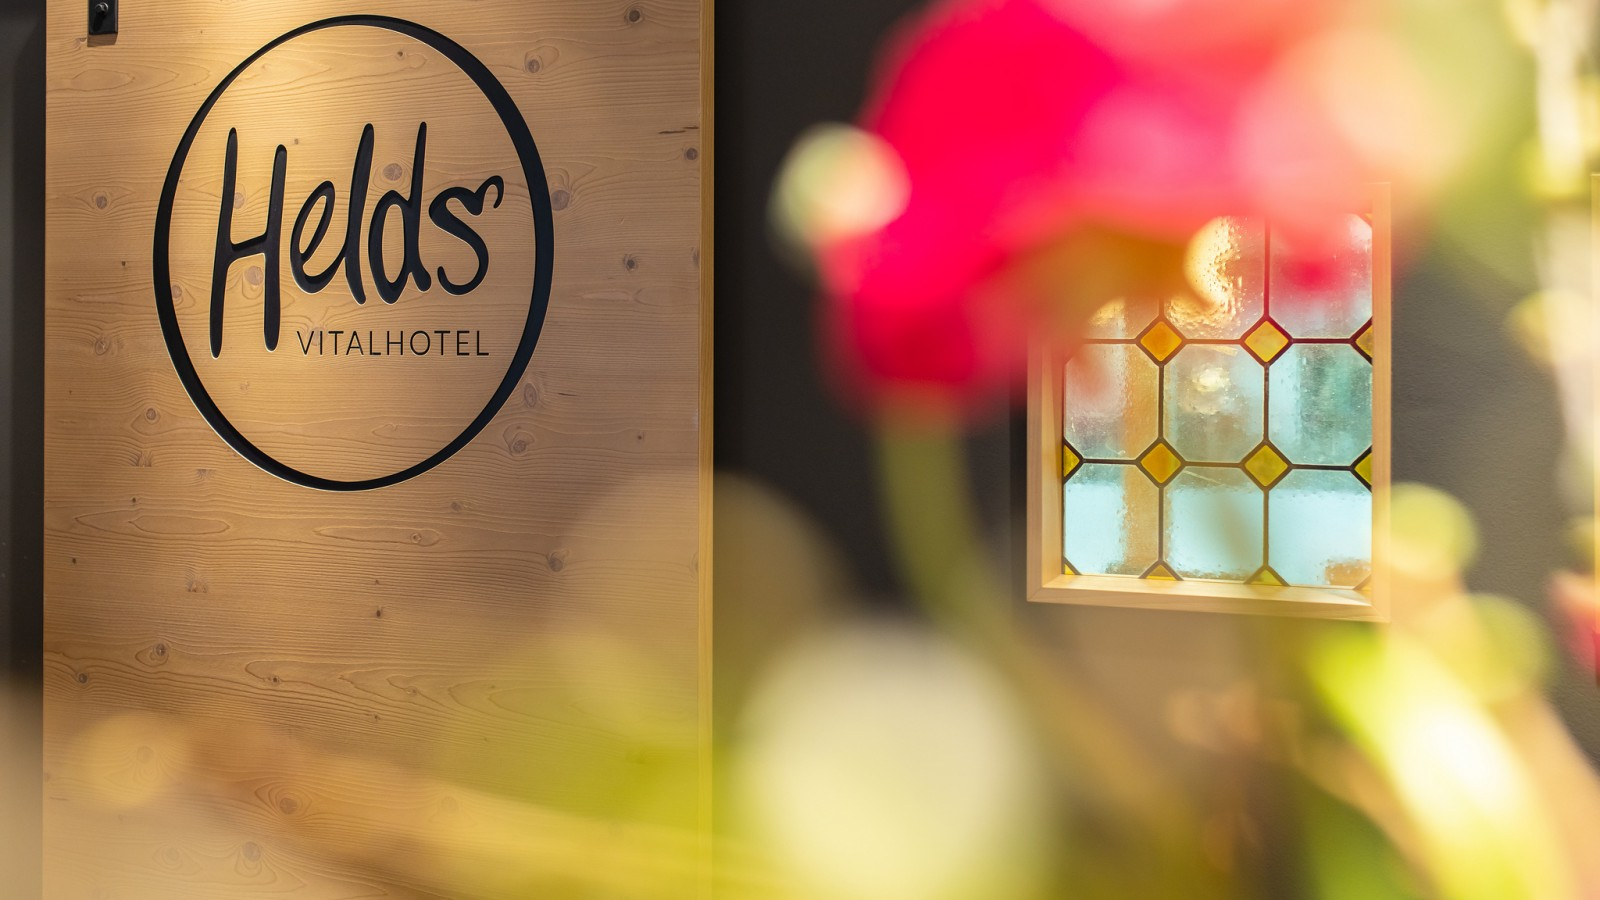 HELDs Vitalhotel | Rezeption Logo